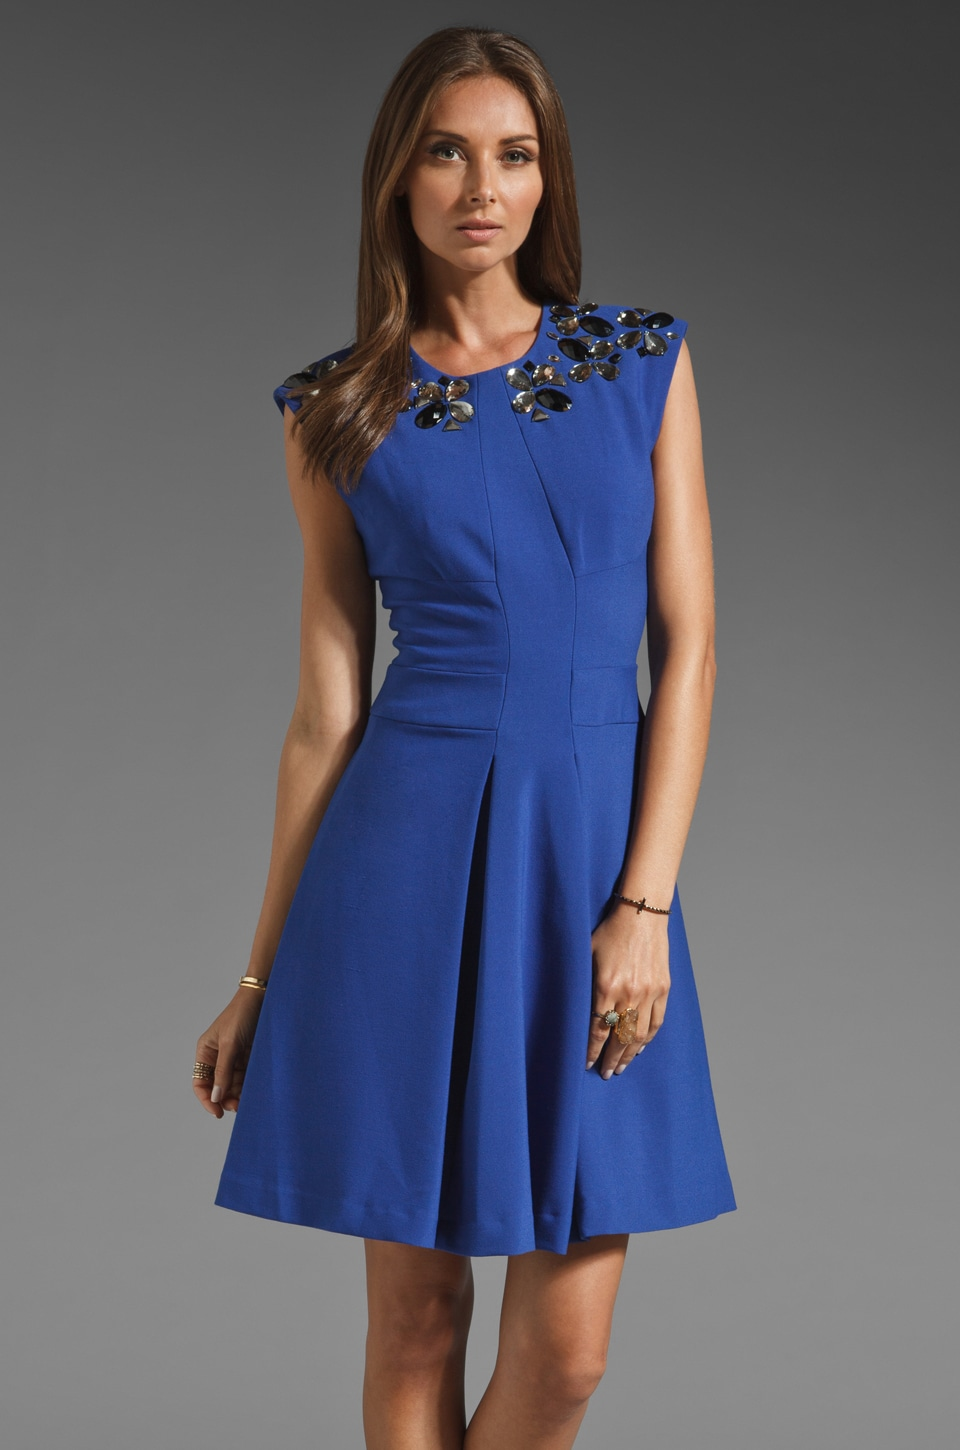 Tracy Reese Wide Awake Stretch Double Face Frock with Necklace Dress in Cobalt